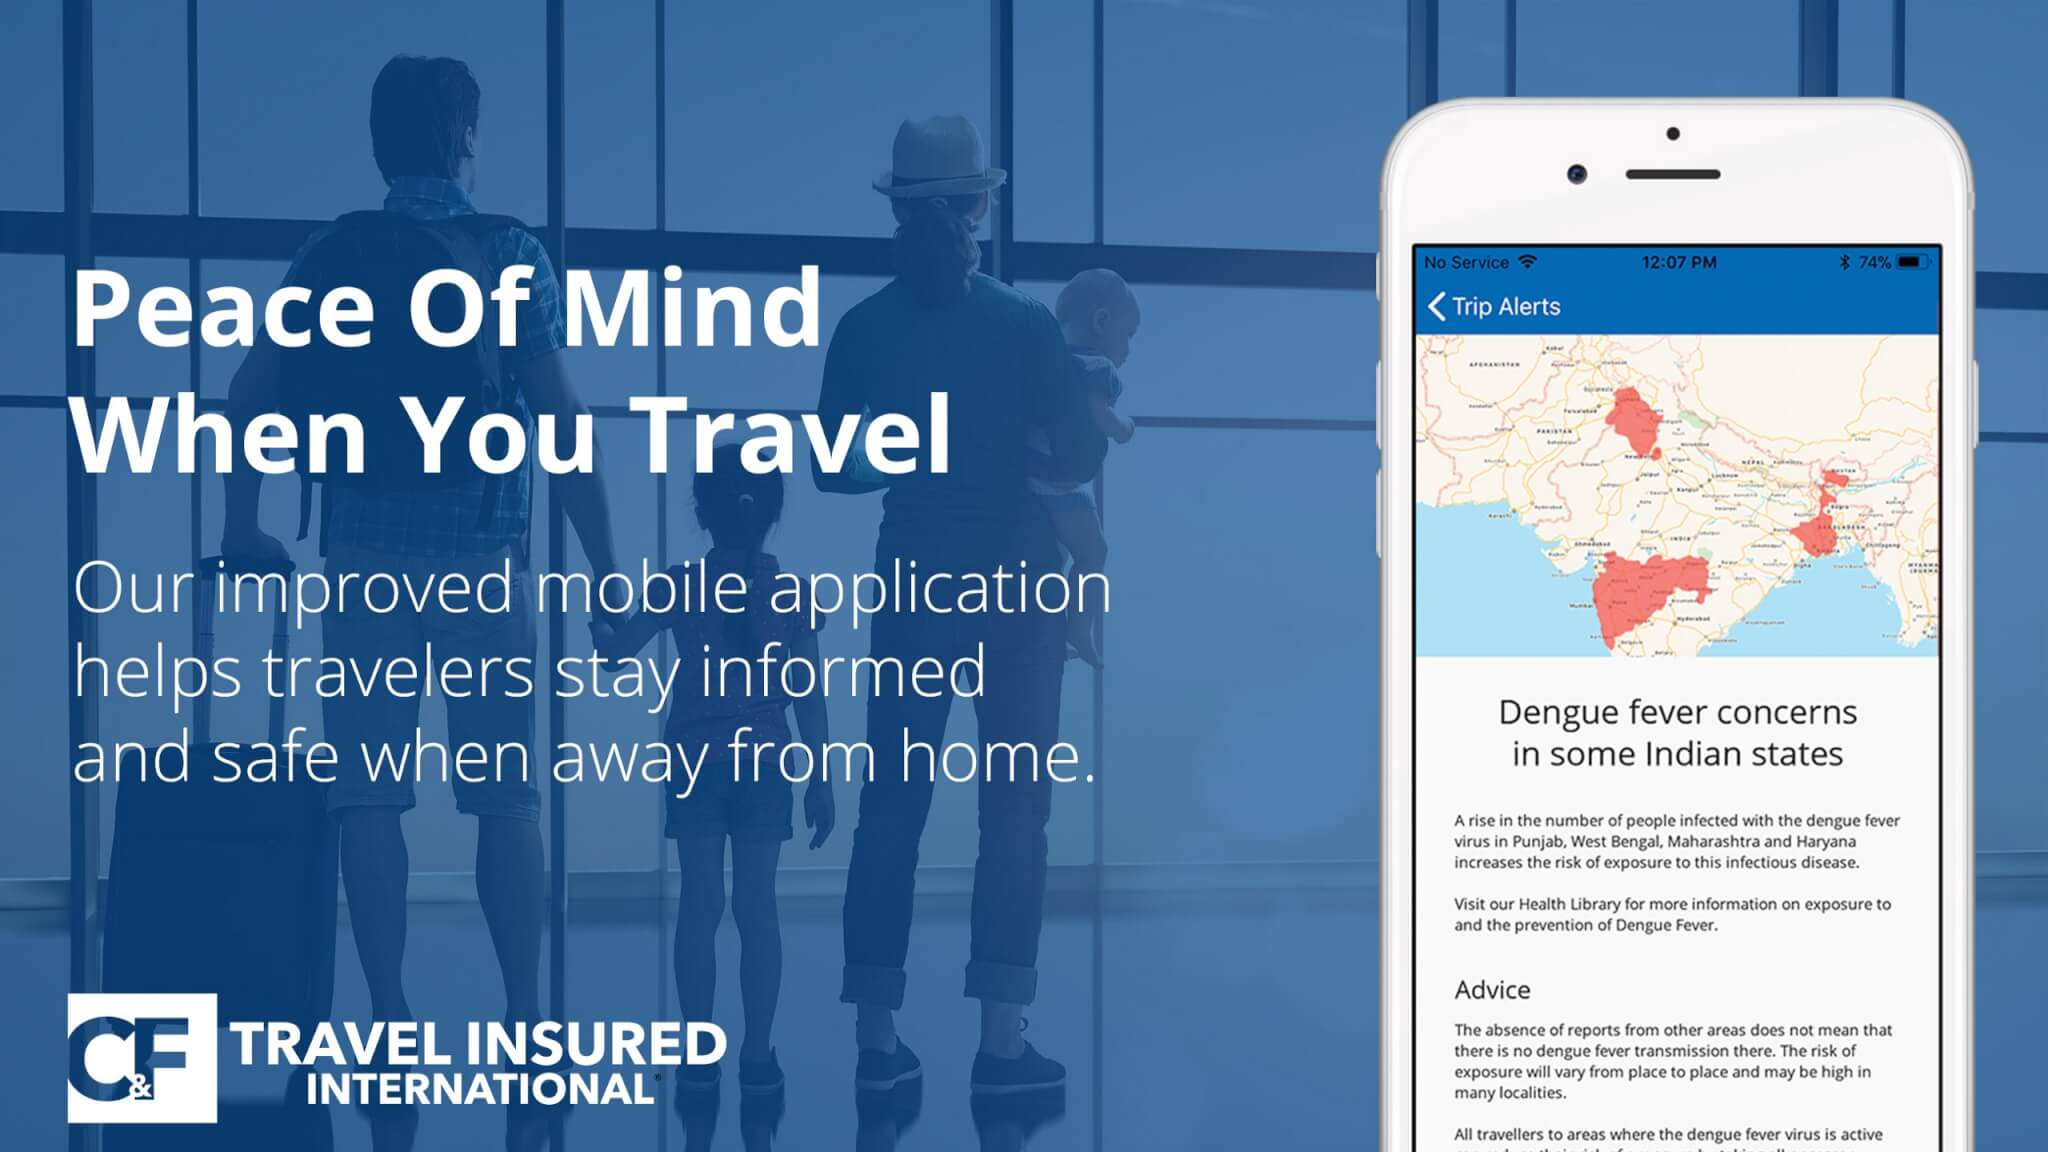 Sitata And Travel Insured International Announce Innovation Partnership To Keep Travelers Out of Harms Way